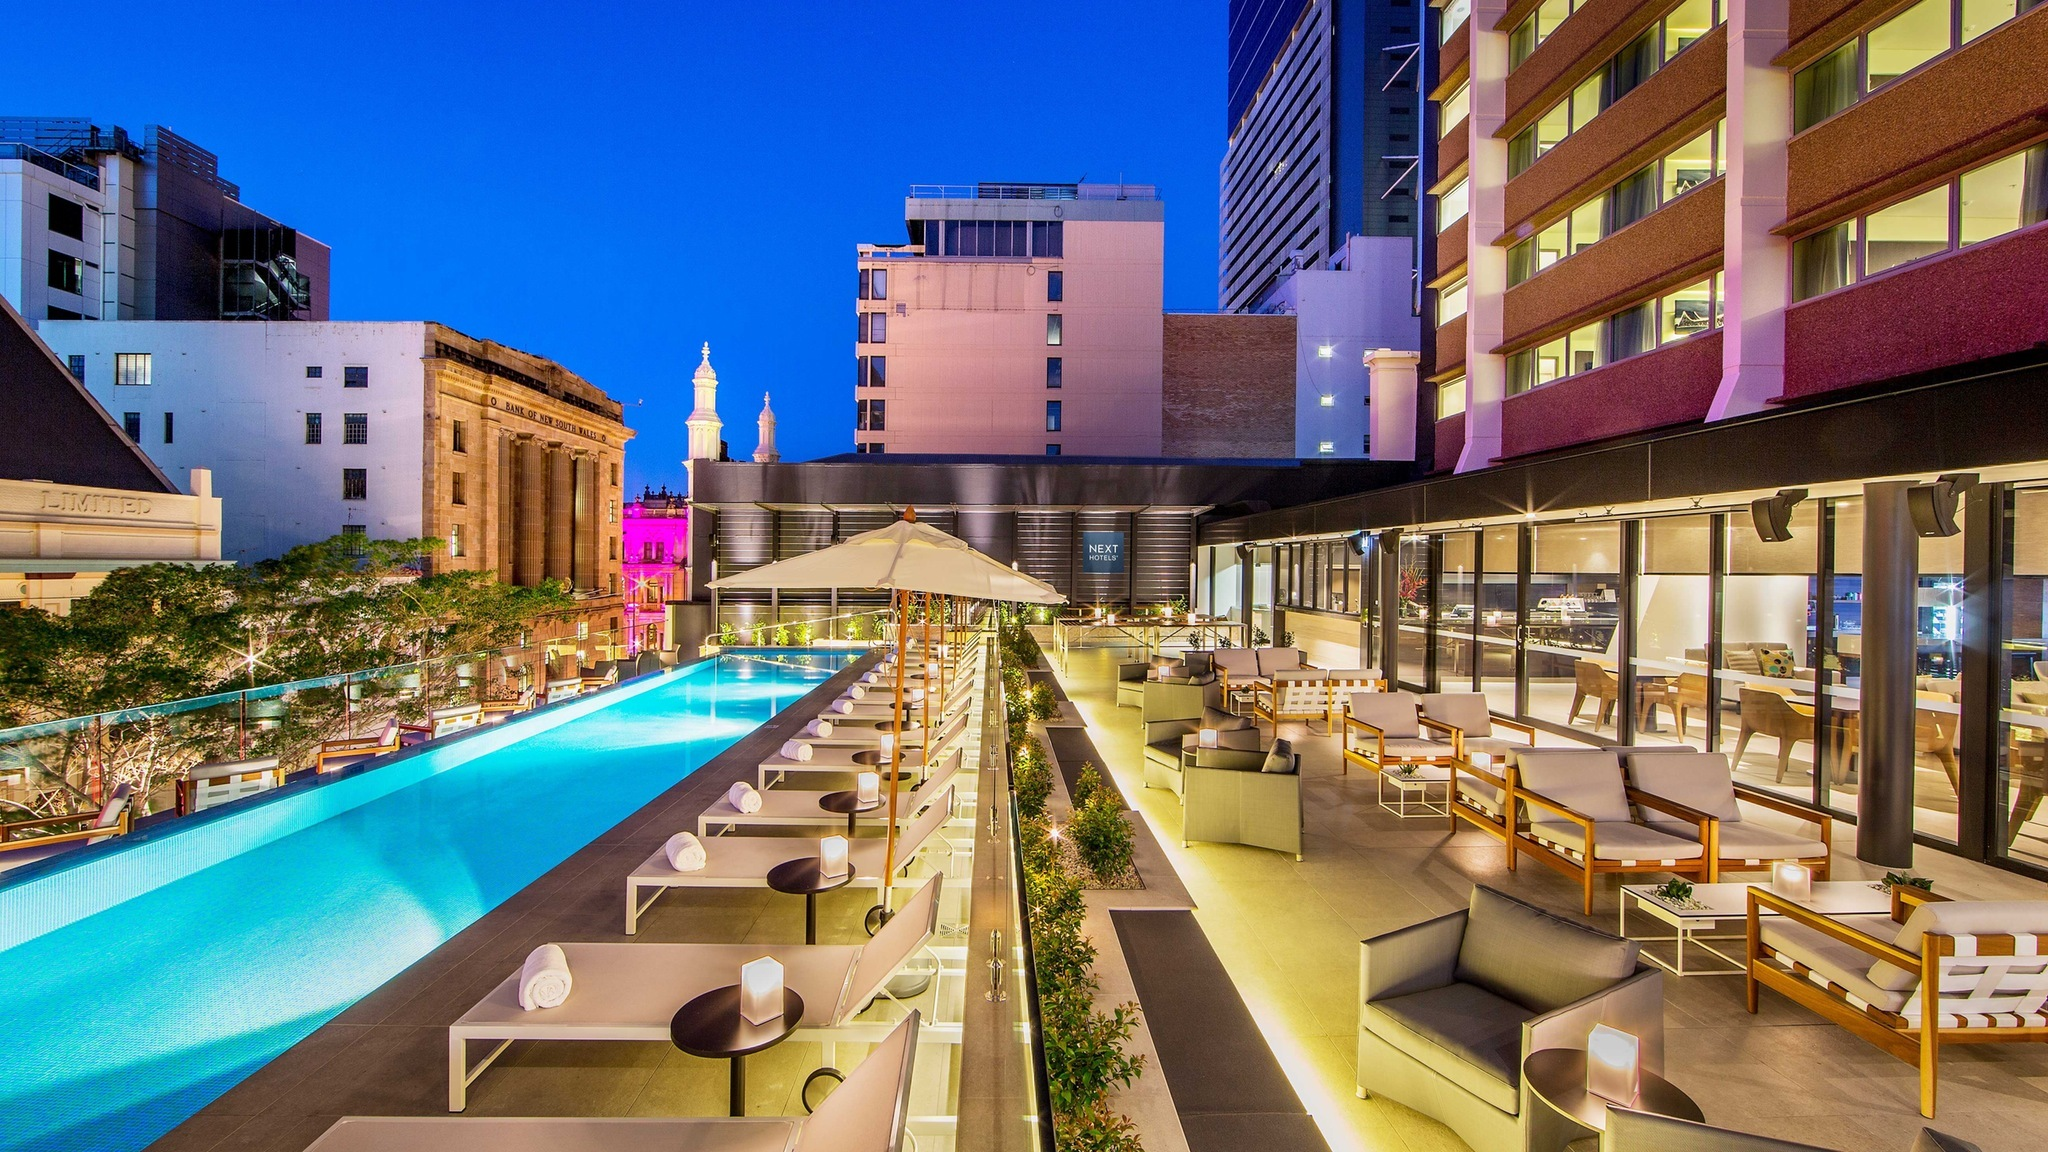 The best hotels in Brisbane